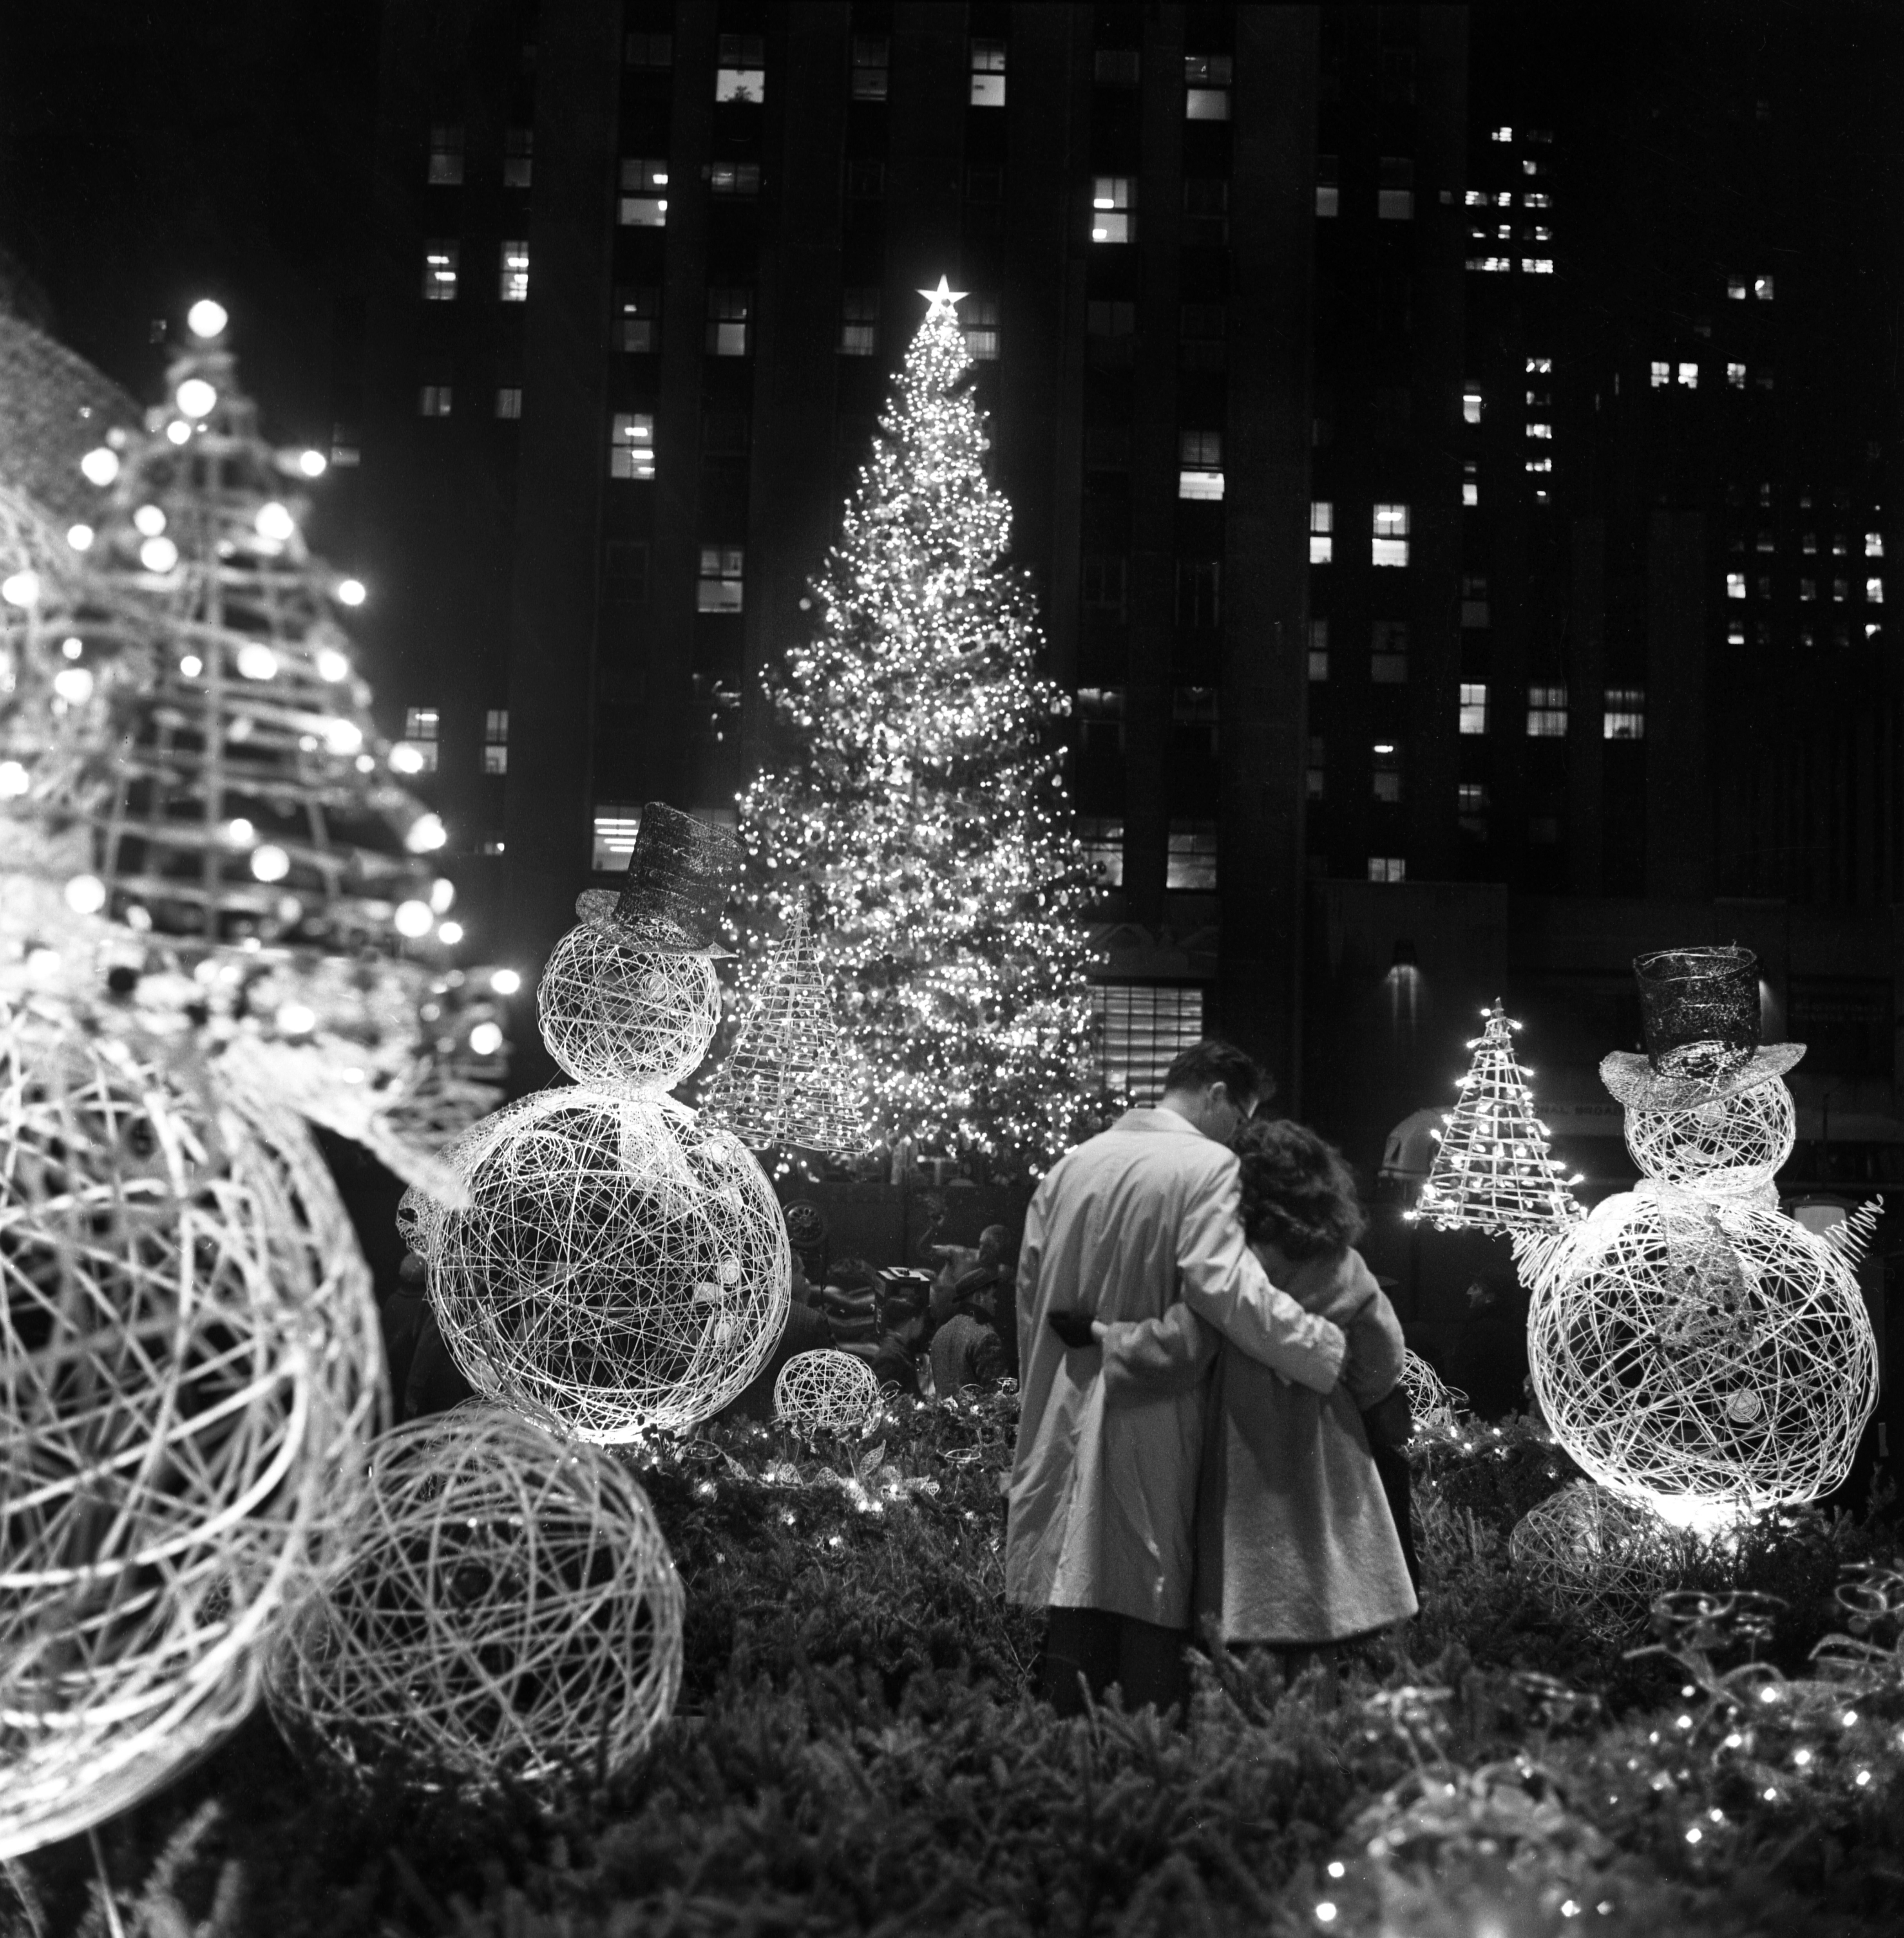 The Rockefeller Center Christmas Tree Through the Years